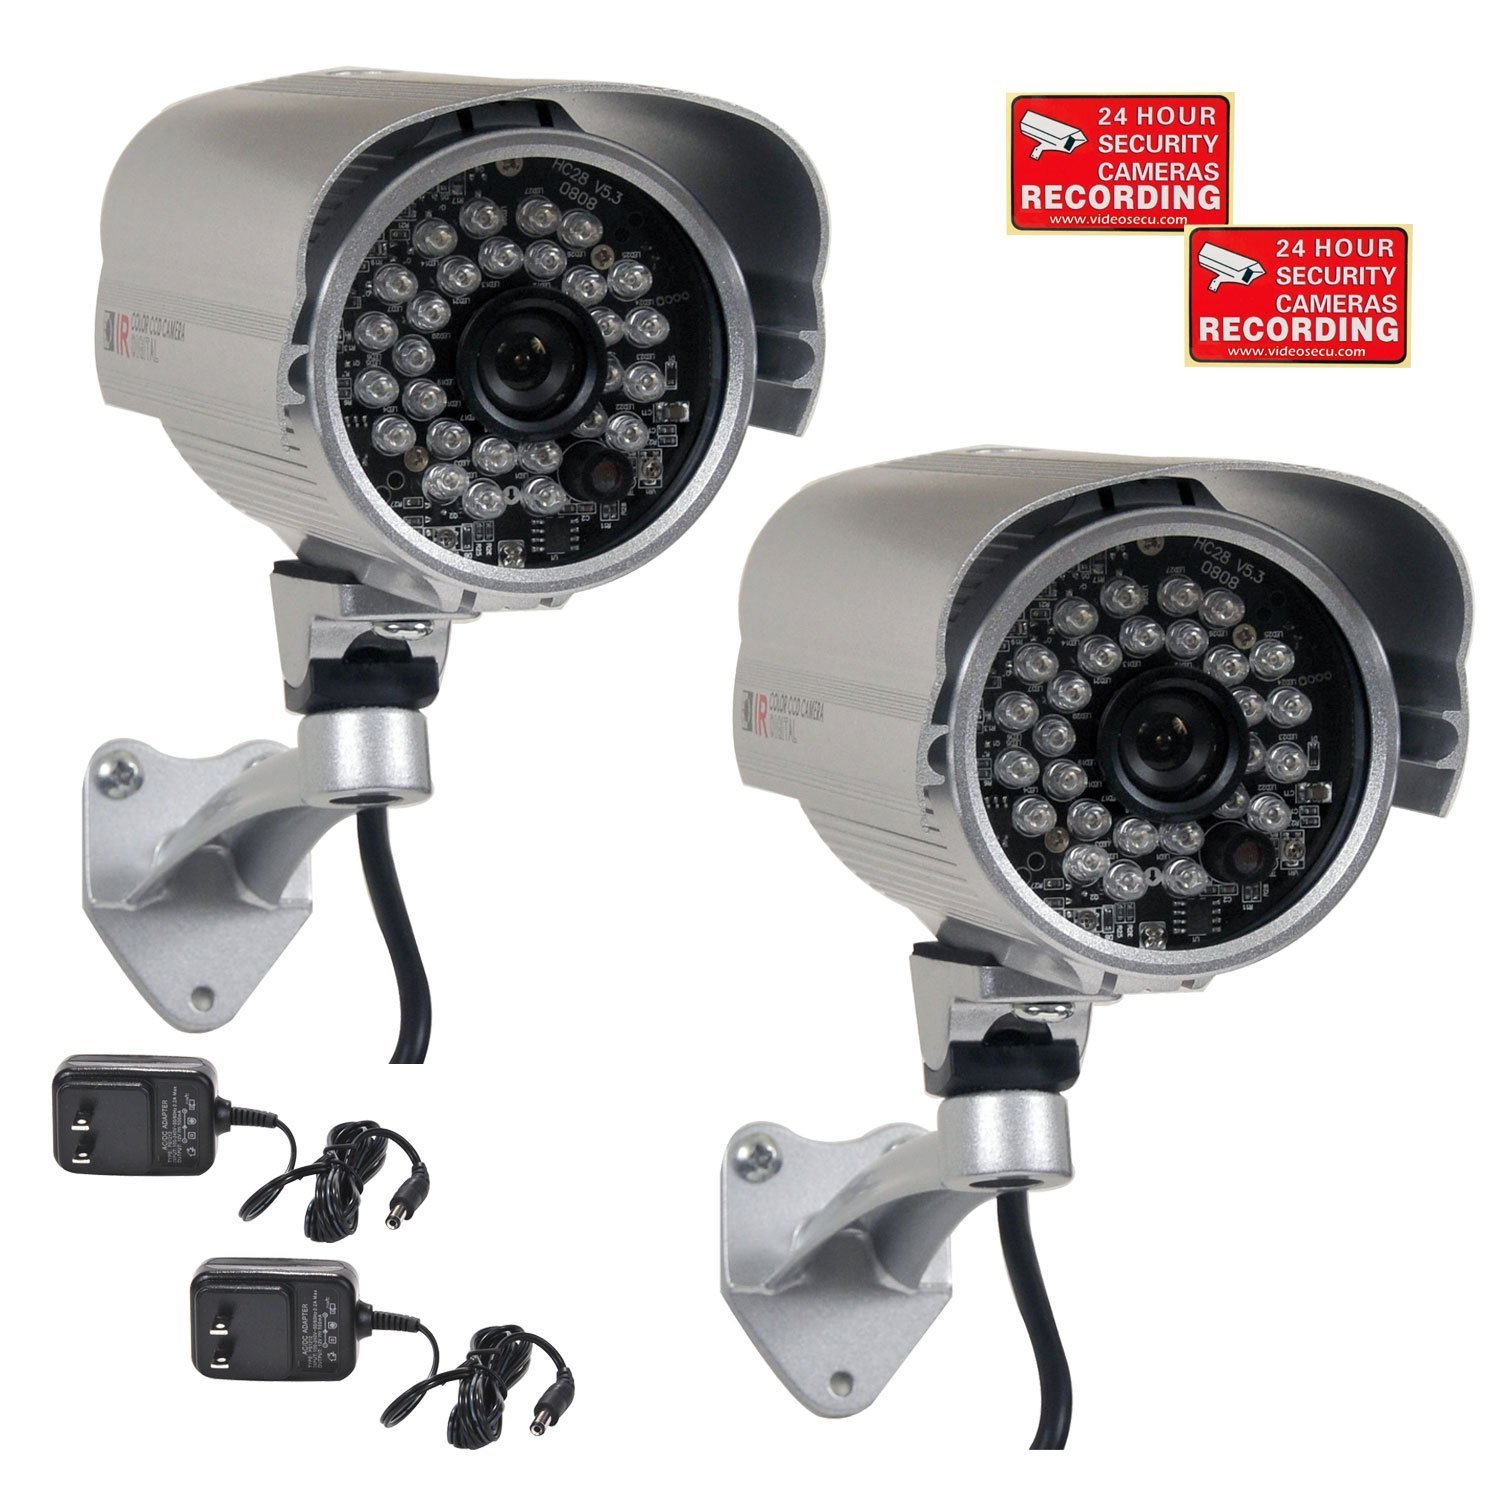 VideoSecu 2 Pack Bullet 700TVL Outdoor Security Cameras 1/3'' SONY Effio CCD Built-in IR Infrared Day Night Vision 3.6mm Lens Wide Angle for DVR CCTV Home Surveillance System with Power Supplies AC4